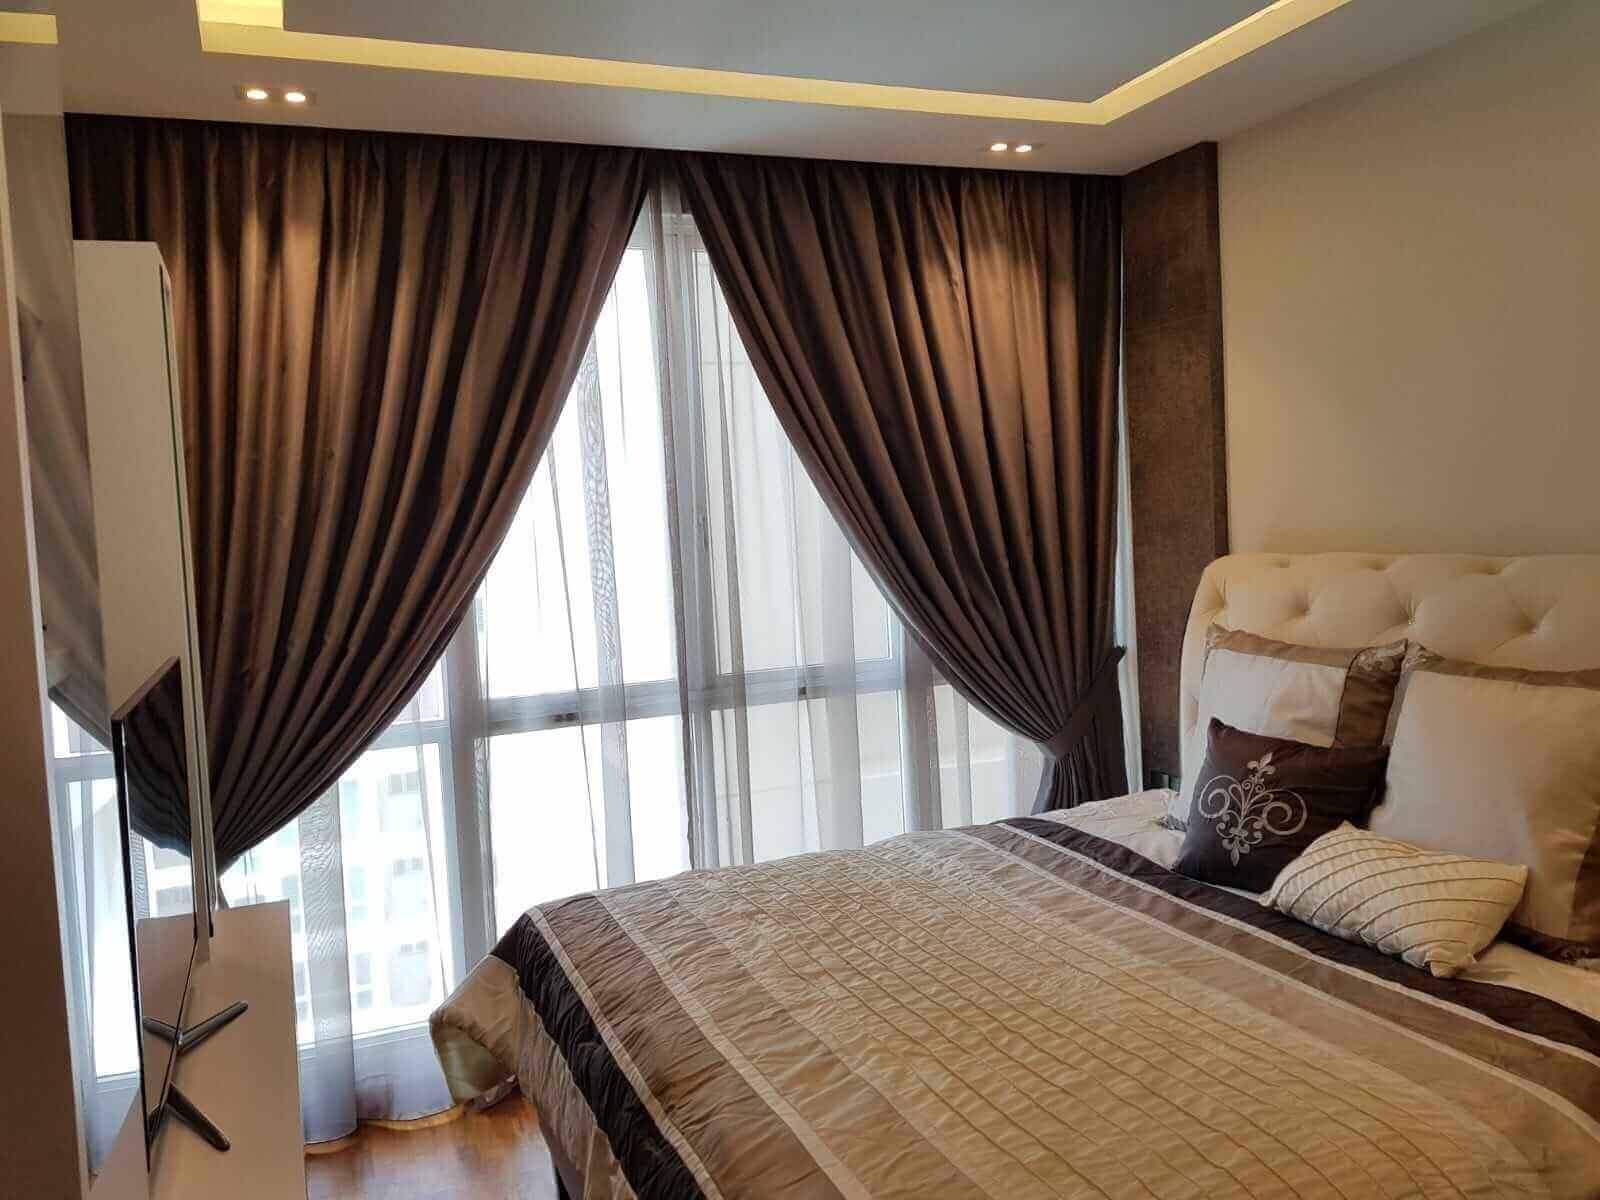 Bedroom copper colour night curtain with grey day curtain